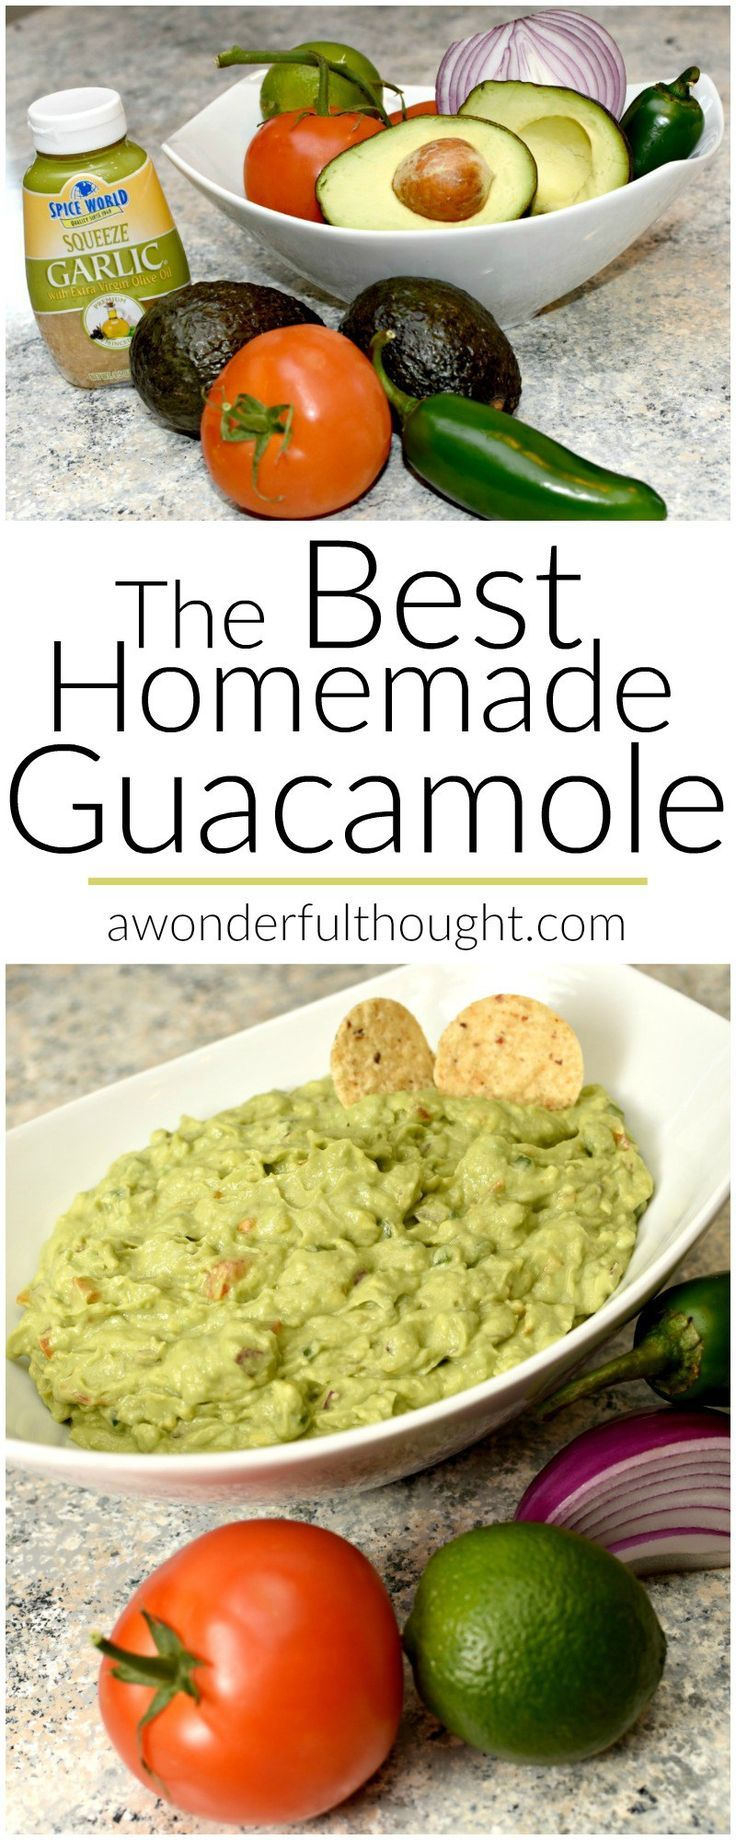 The Best Homemade Guacamole | http://awonderfulthought.com